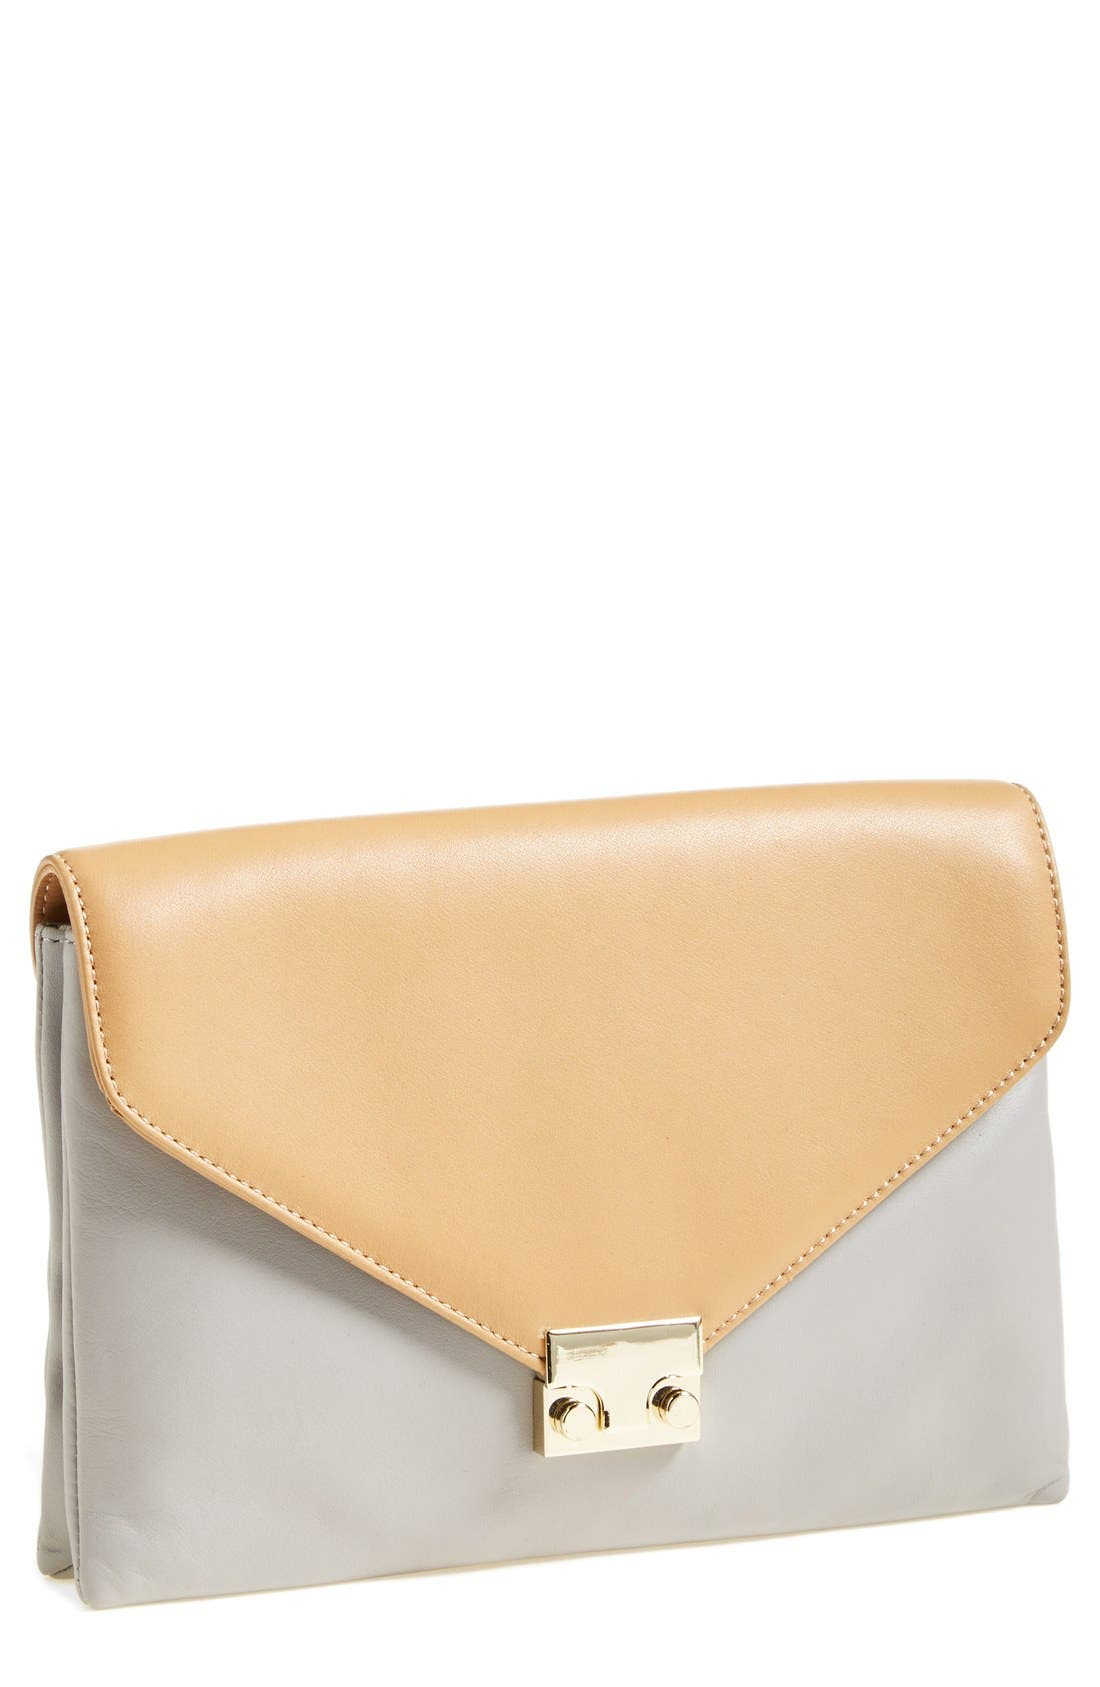 Alternate Image 1 Selected - Loeffler Randall 'Lock' Leather Clutch, Small